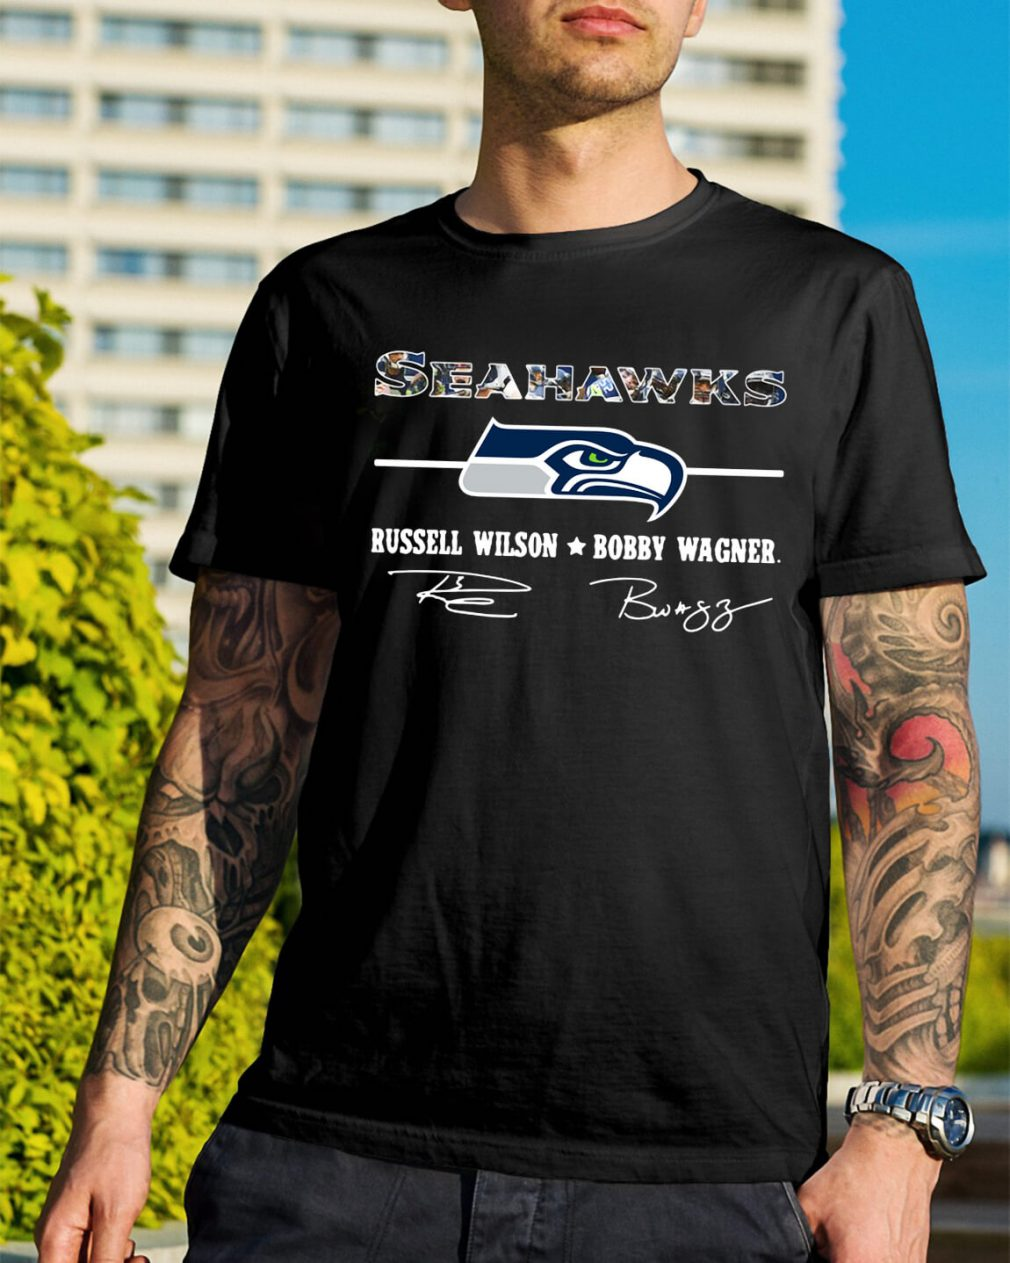 Seahawks Russell Wilson Bobby Wagner Signature shirt